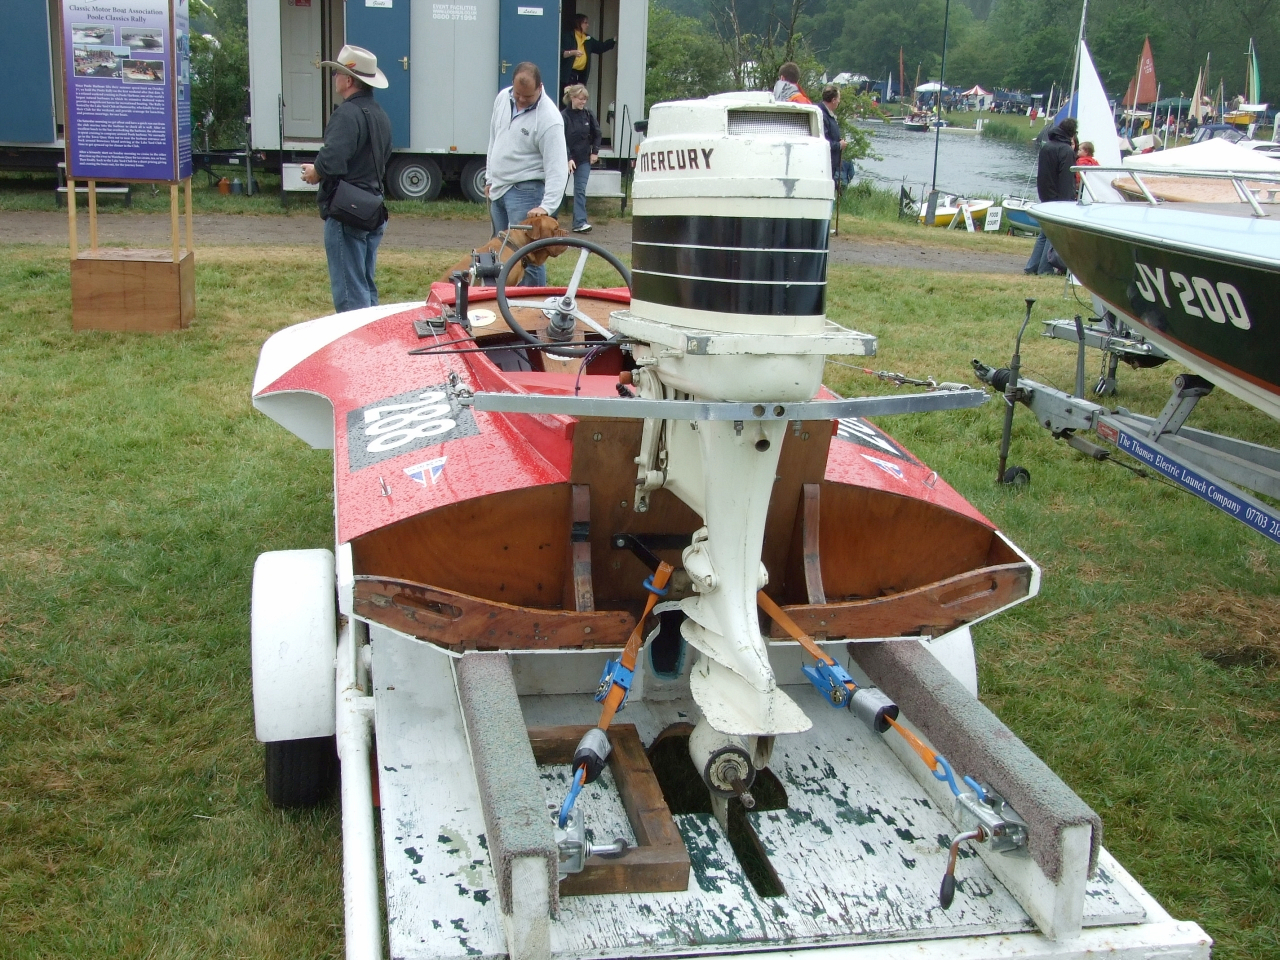 Racing Outboard Hydroplanes for Sale http://intheboatshed.net/2009/06/27/classic-motor-boat-association-boats-at-the-beale-park-show/